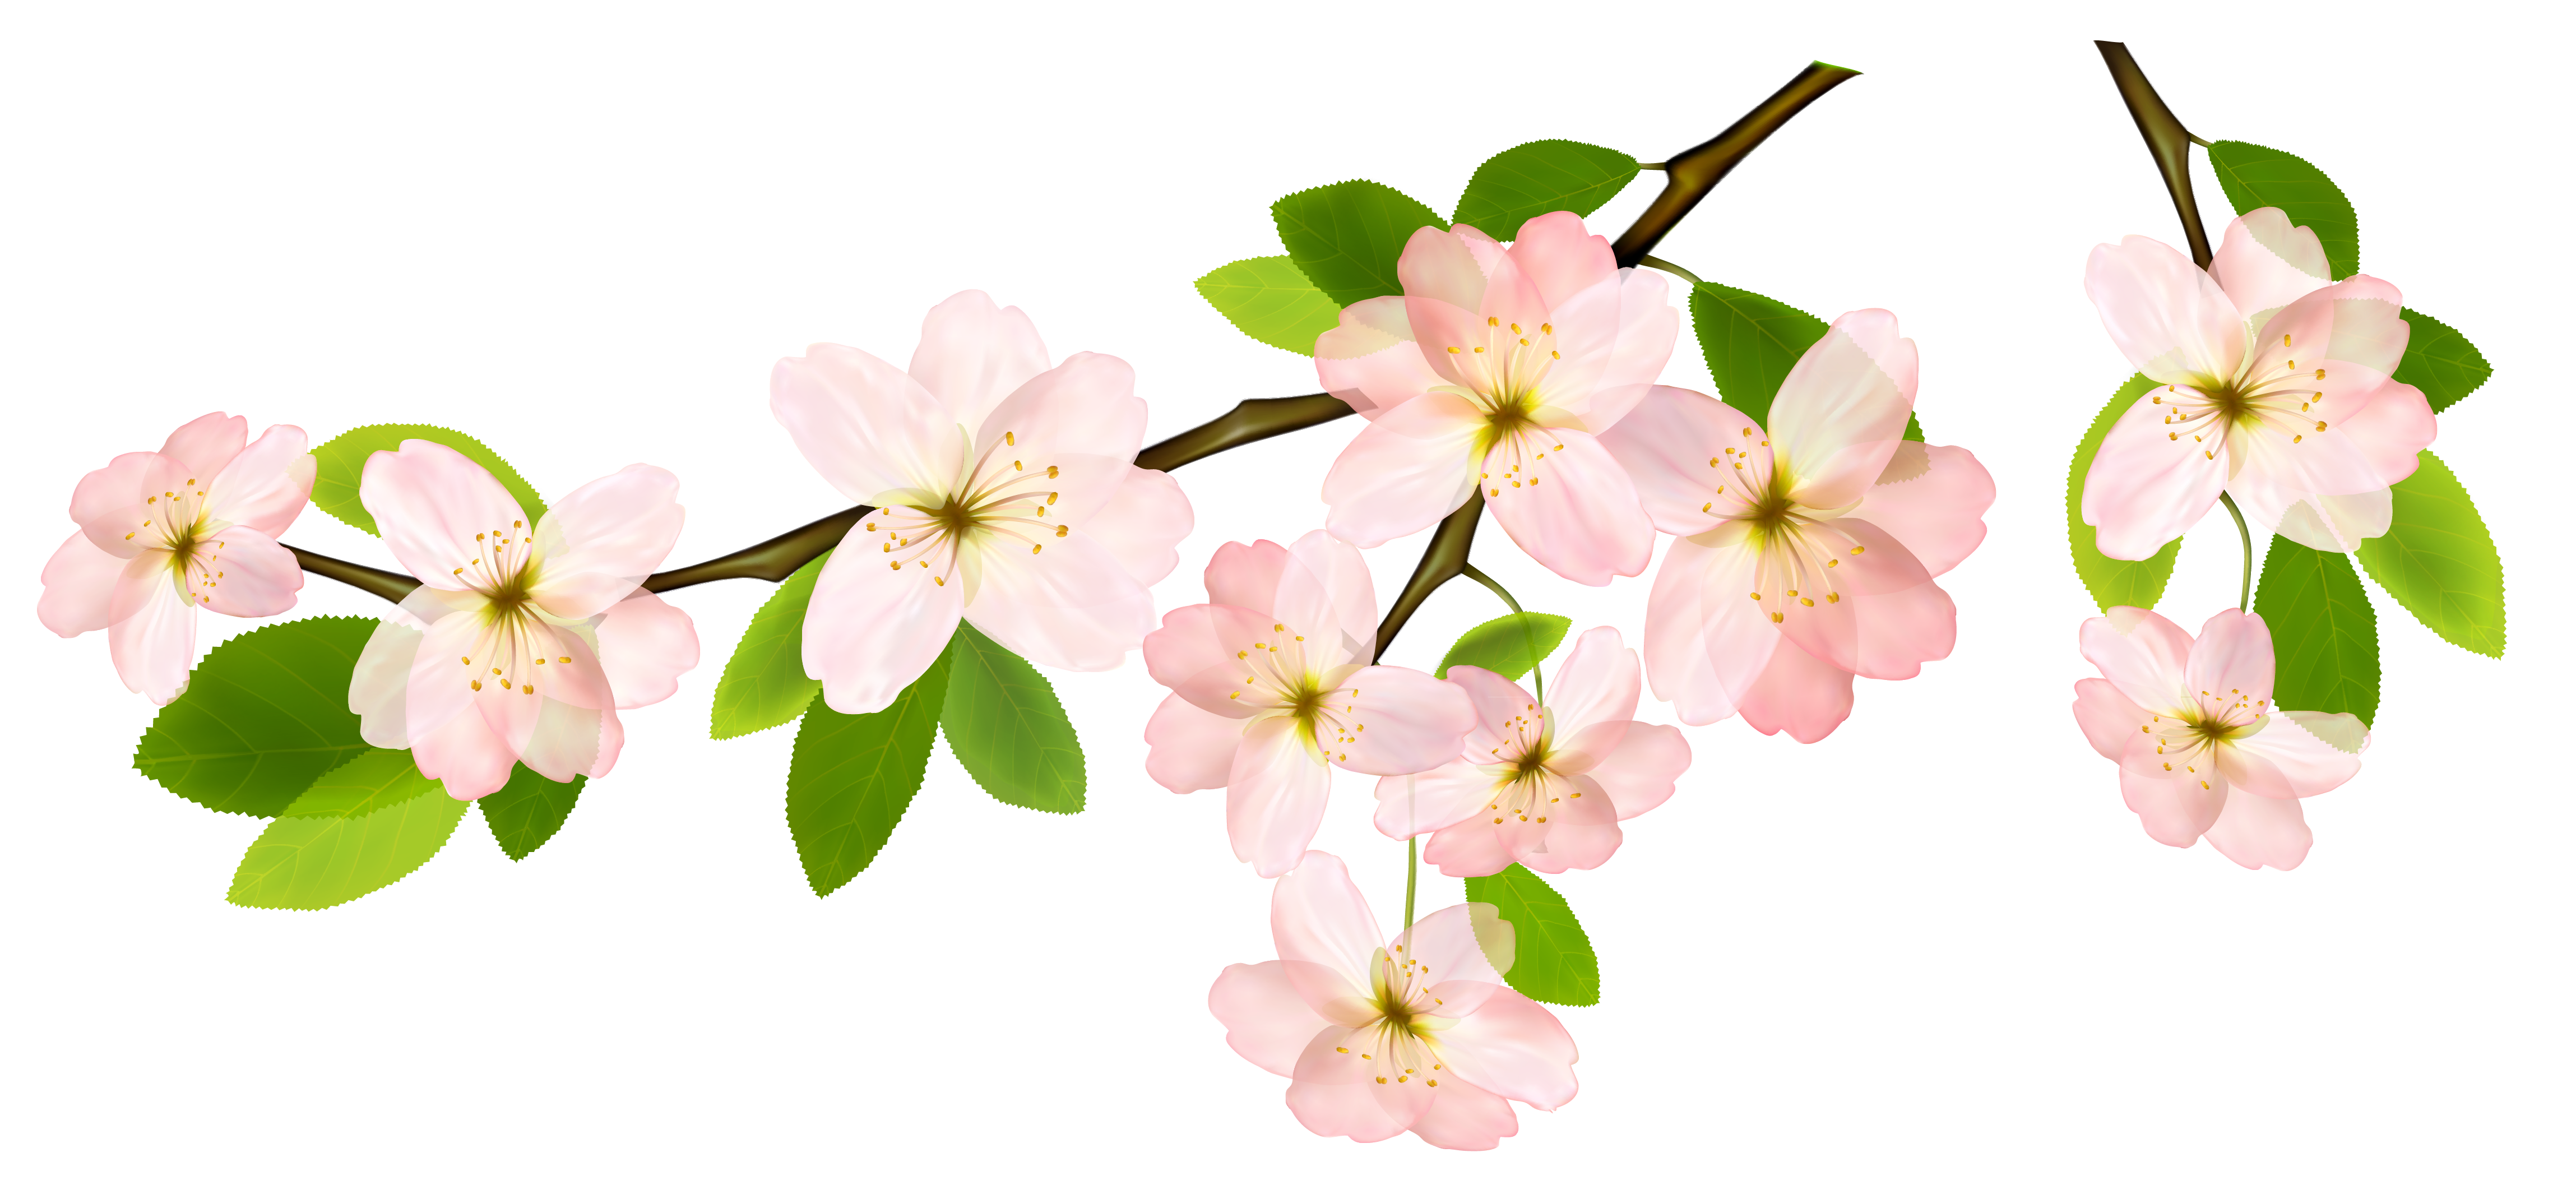 Clipart rose branch. Spring png picture gallery